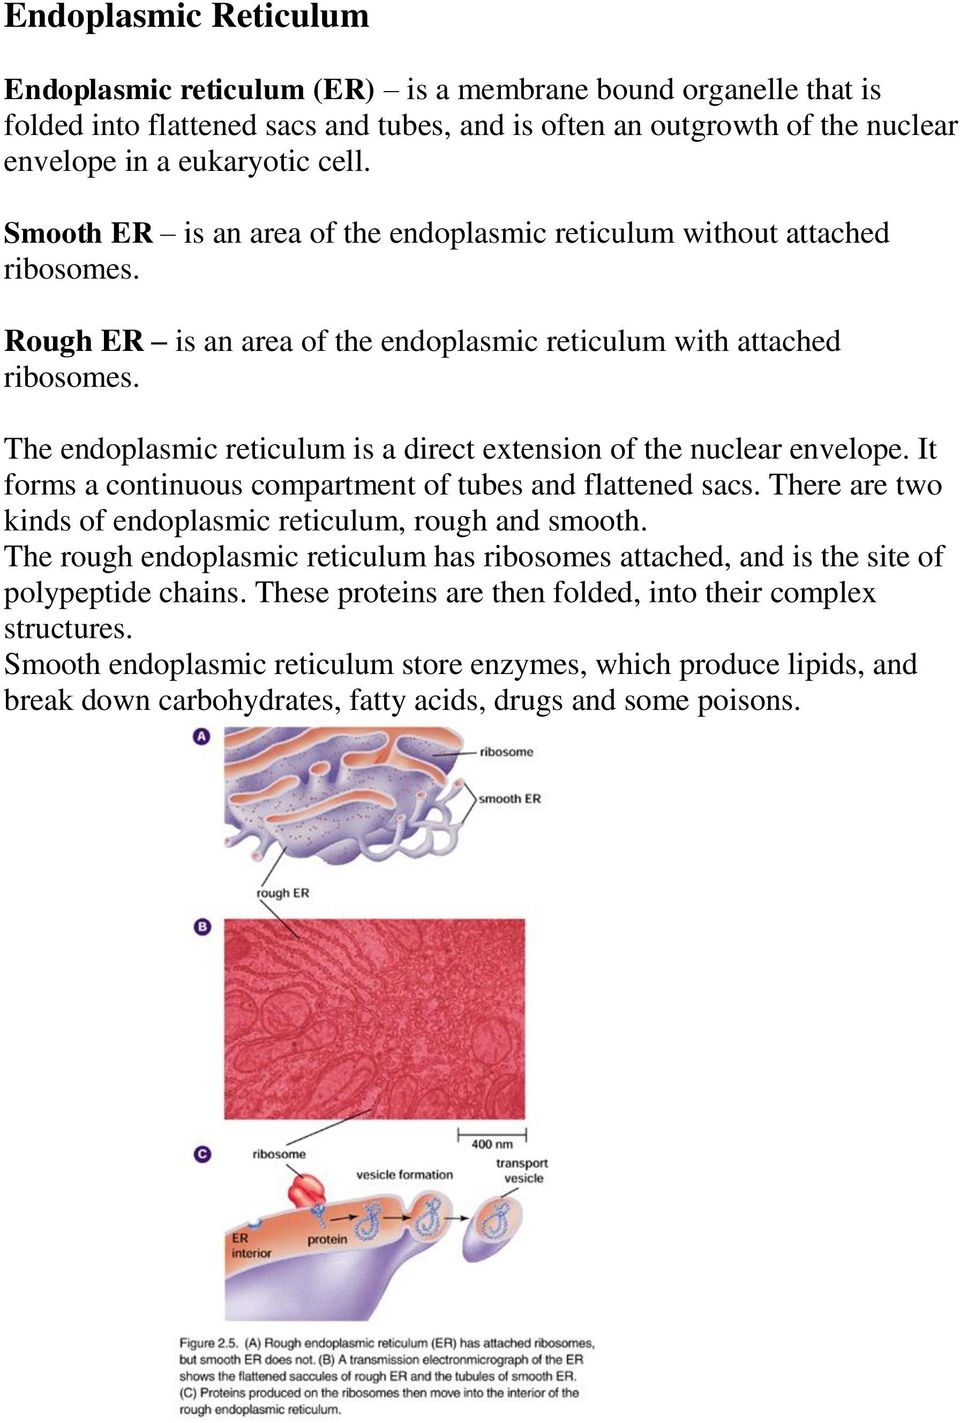 The endoplasmic reticulum is a direct extension of the nuclear envelope. It forms a continuous compartment of tubes and flattened sacs. There are two kinds of endoplasmic reticulum, rough and smooth.